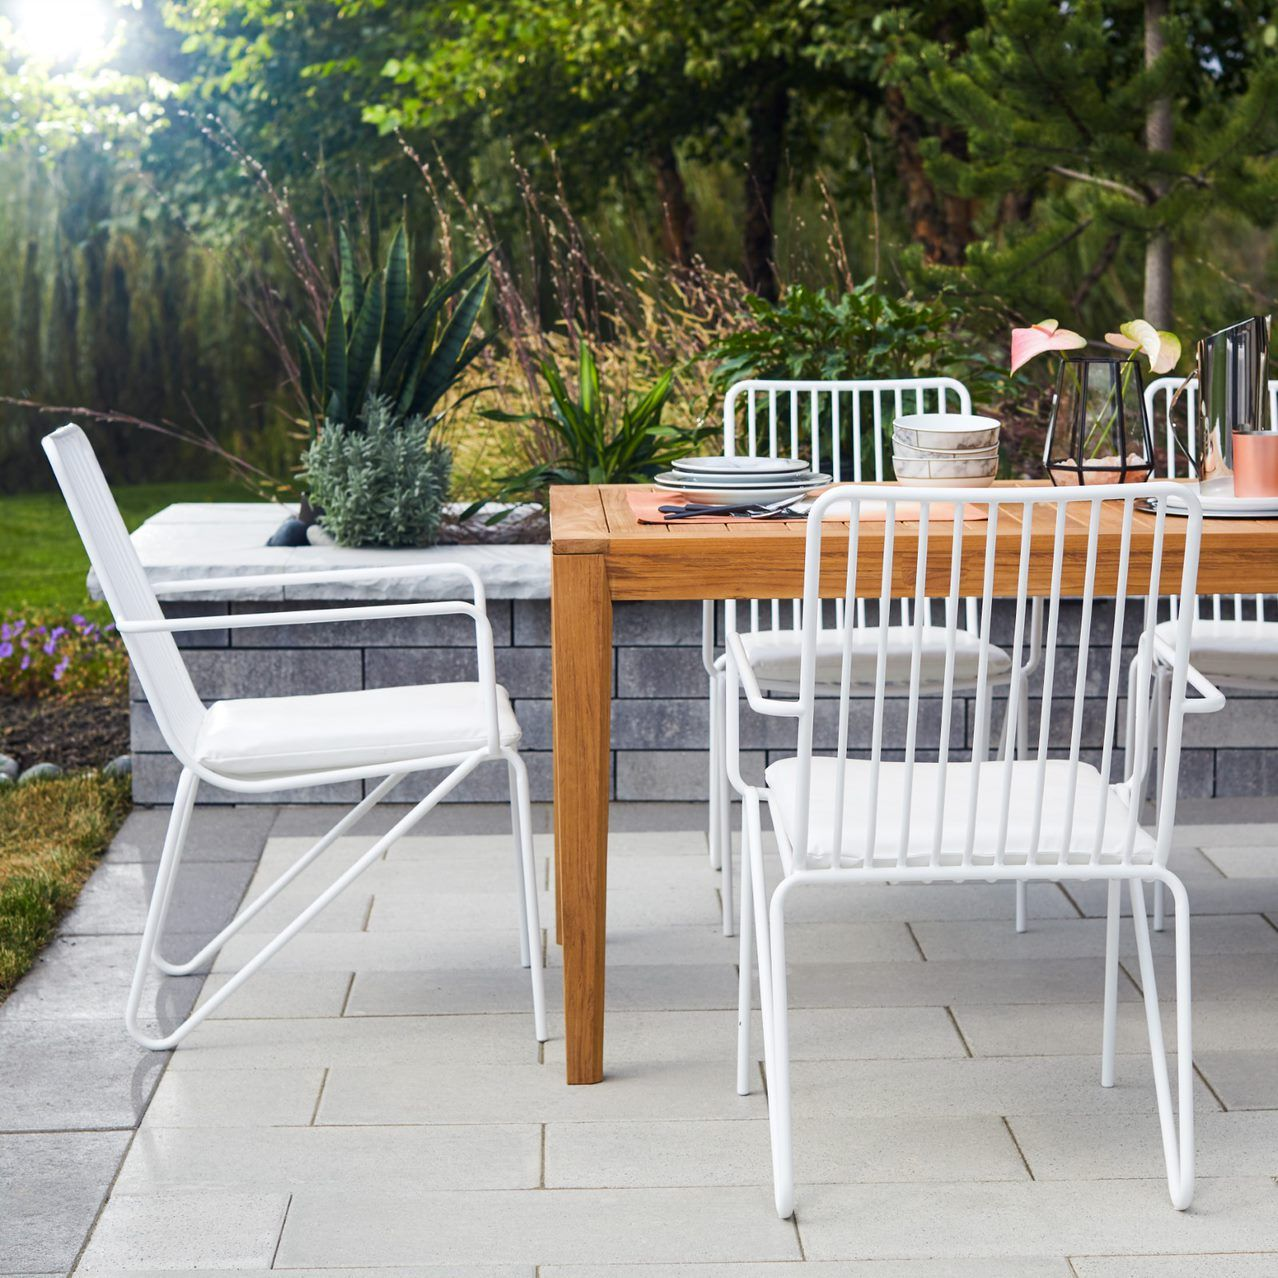 How To Prep Your Deck For Outdoor Entertaining